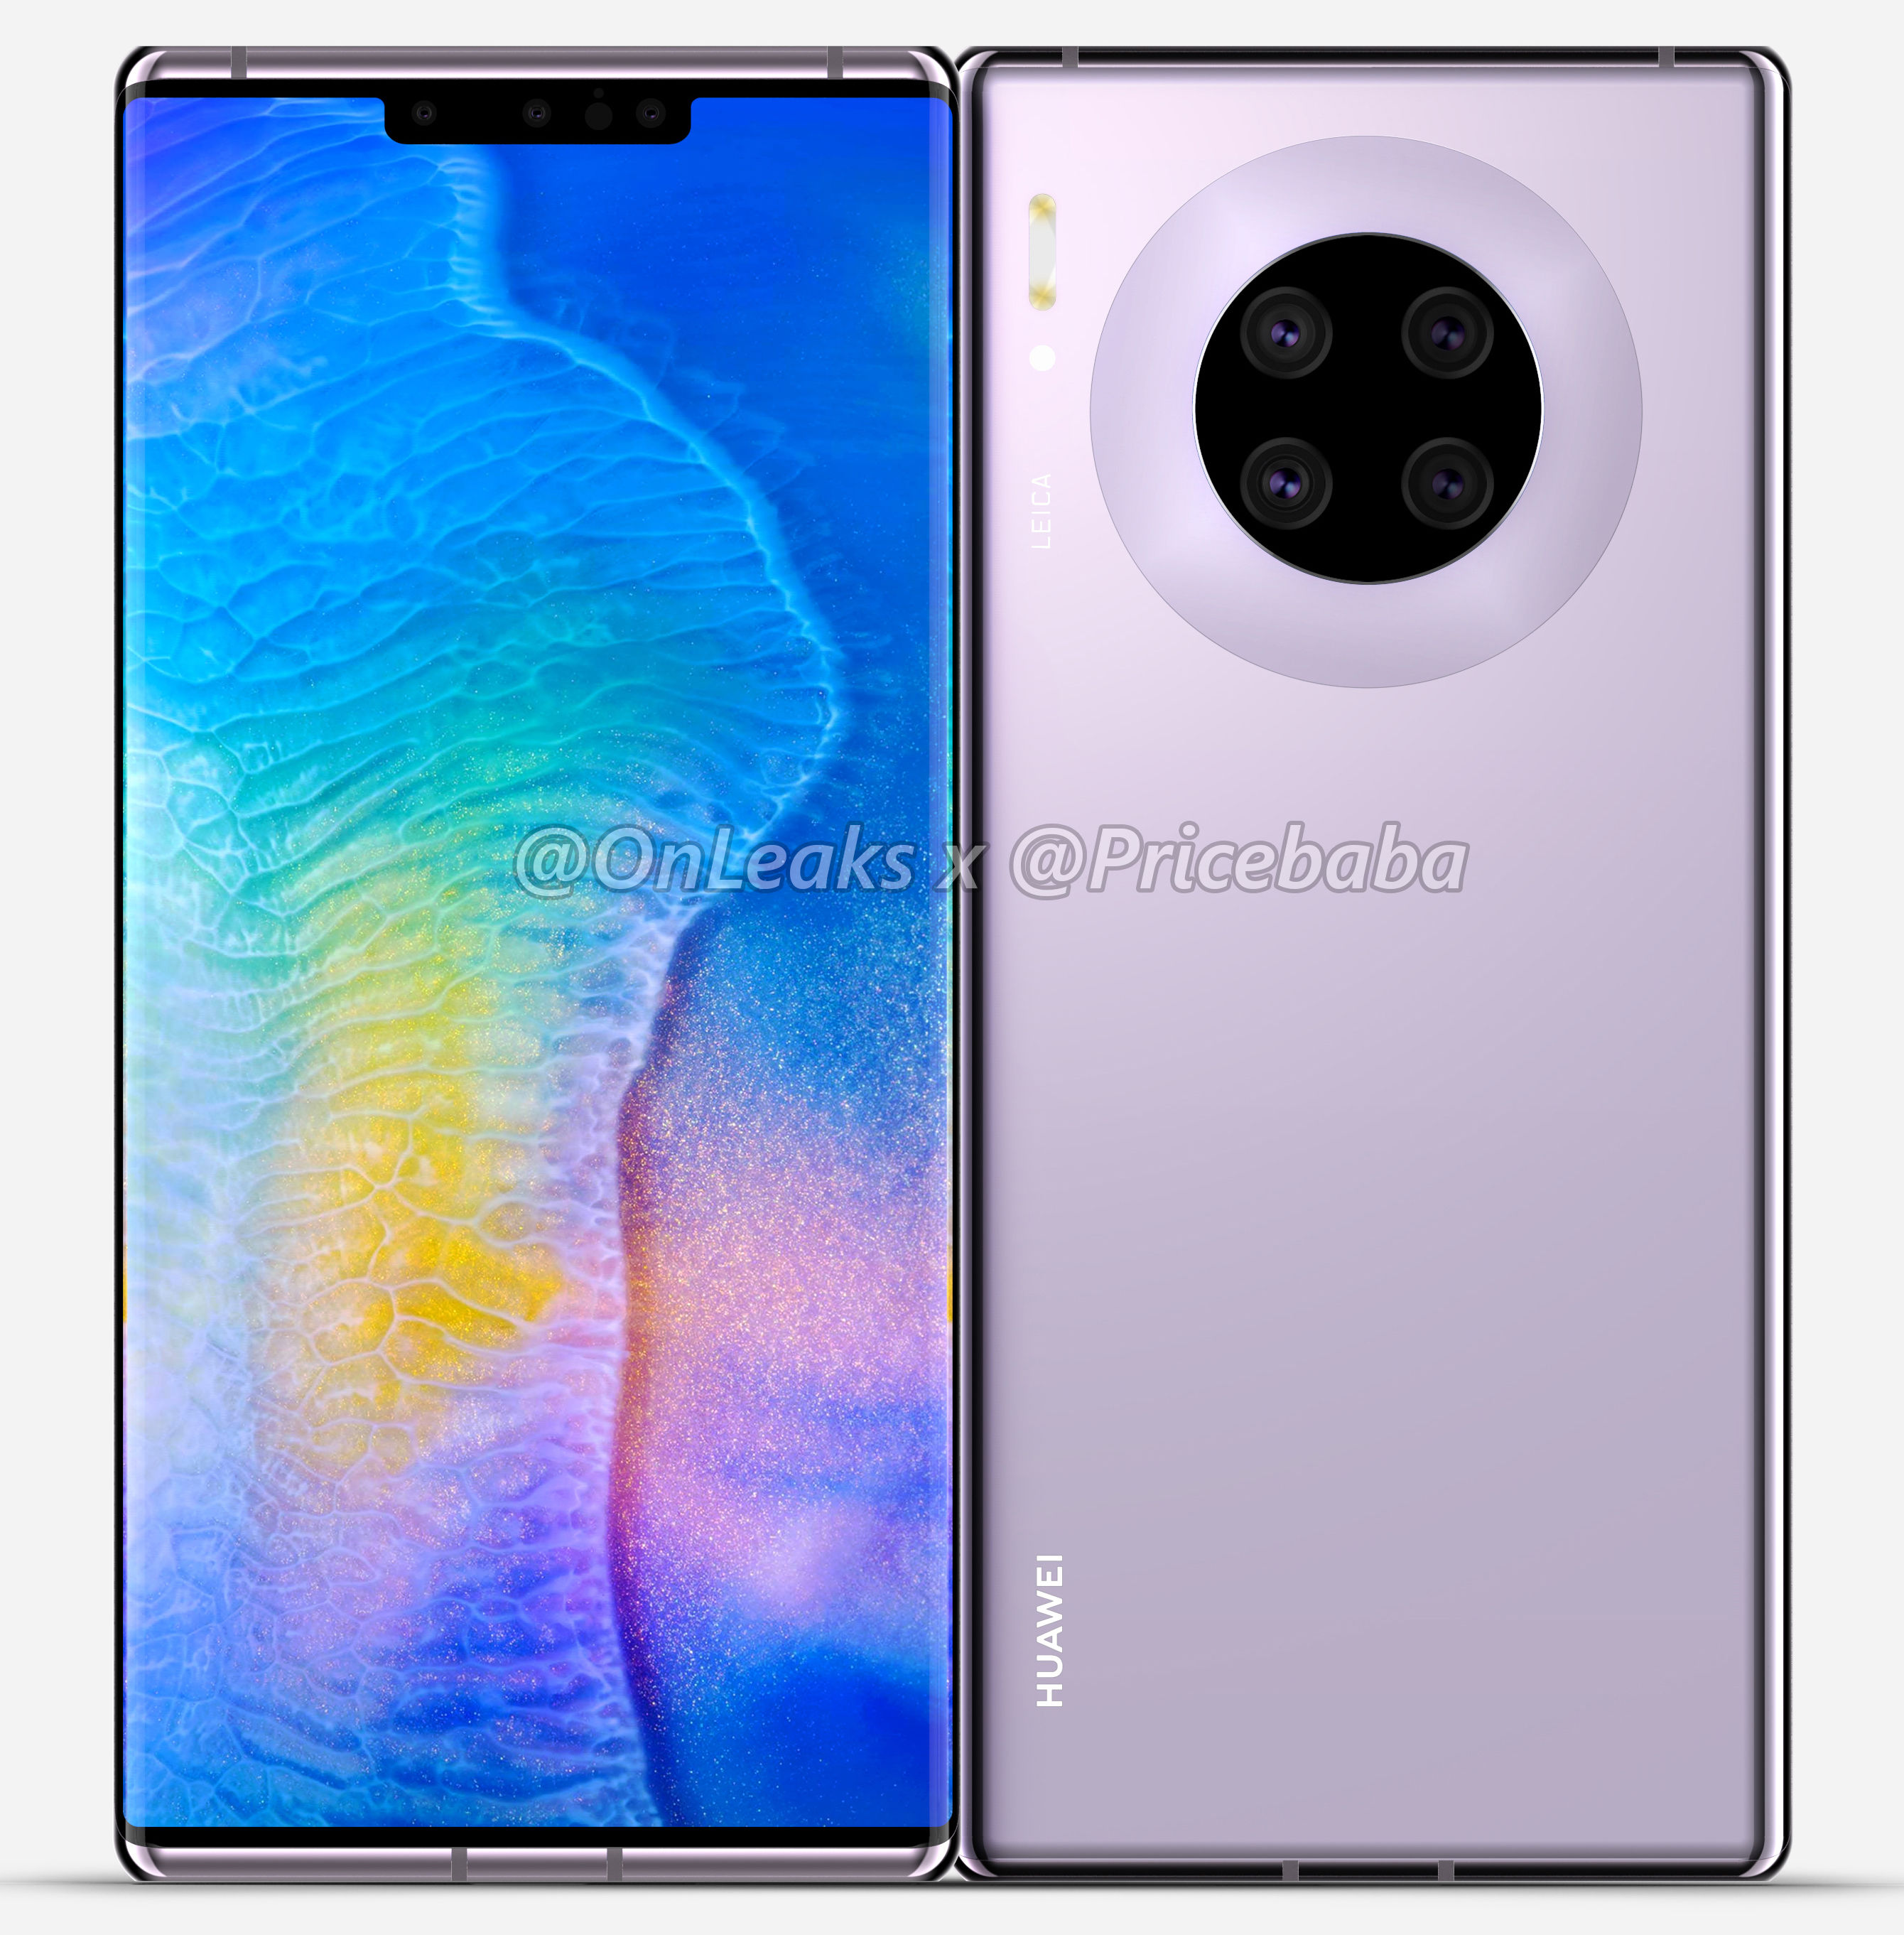 Huawei Mate 30 Pro renders and key details leaked